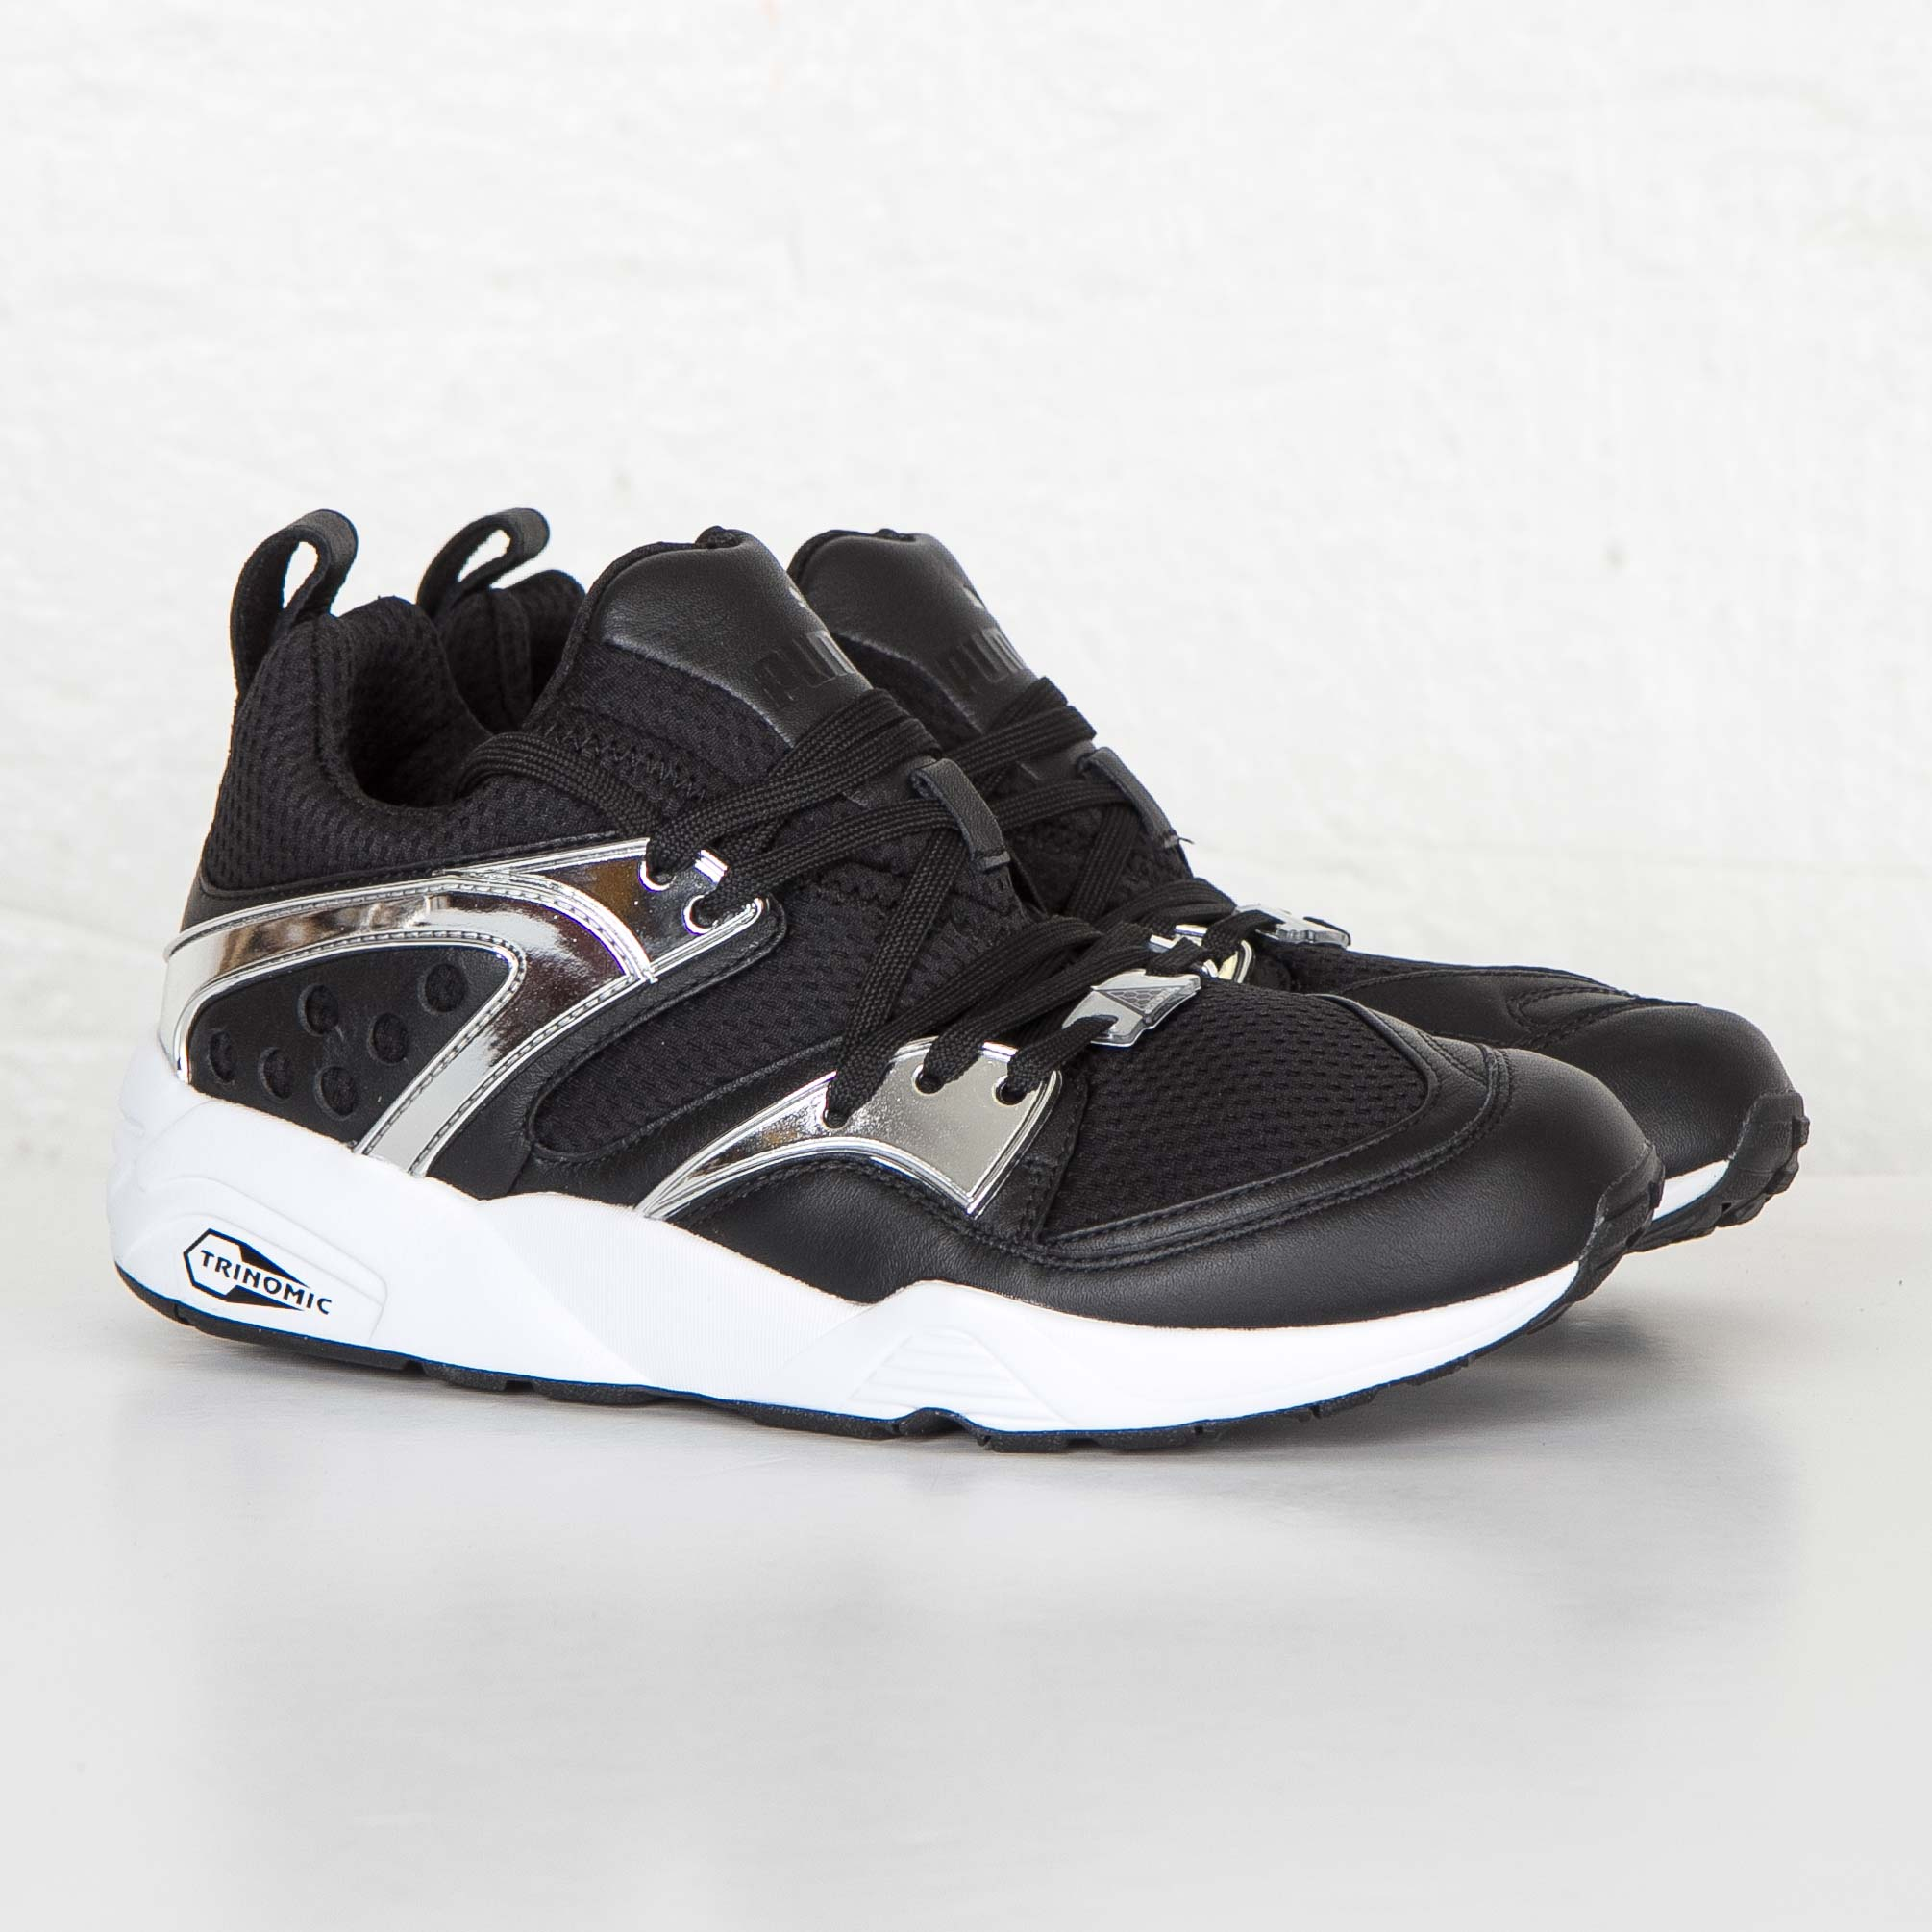 Alta qualit puma blaze of glory metallic